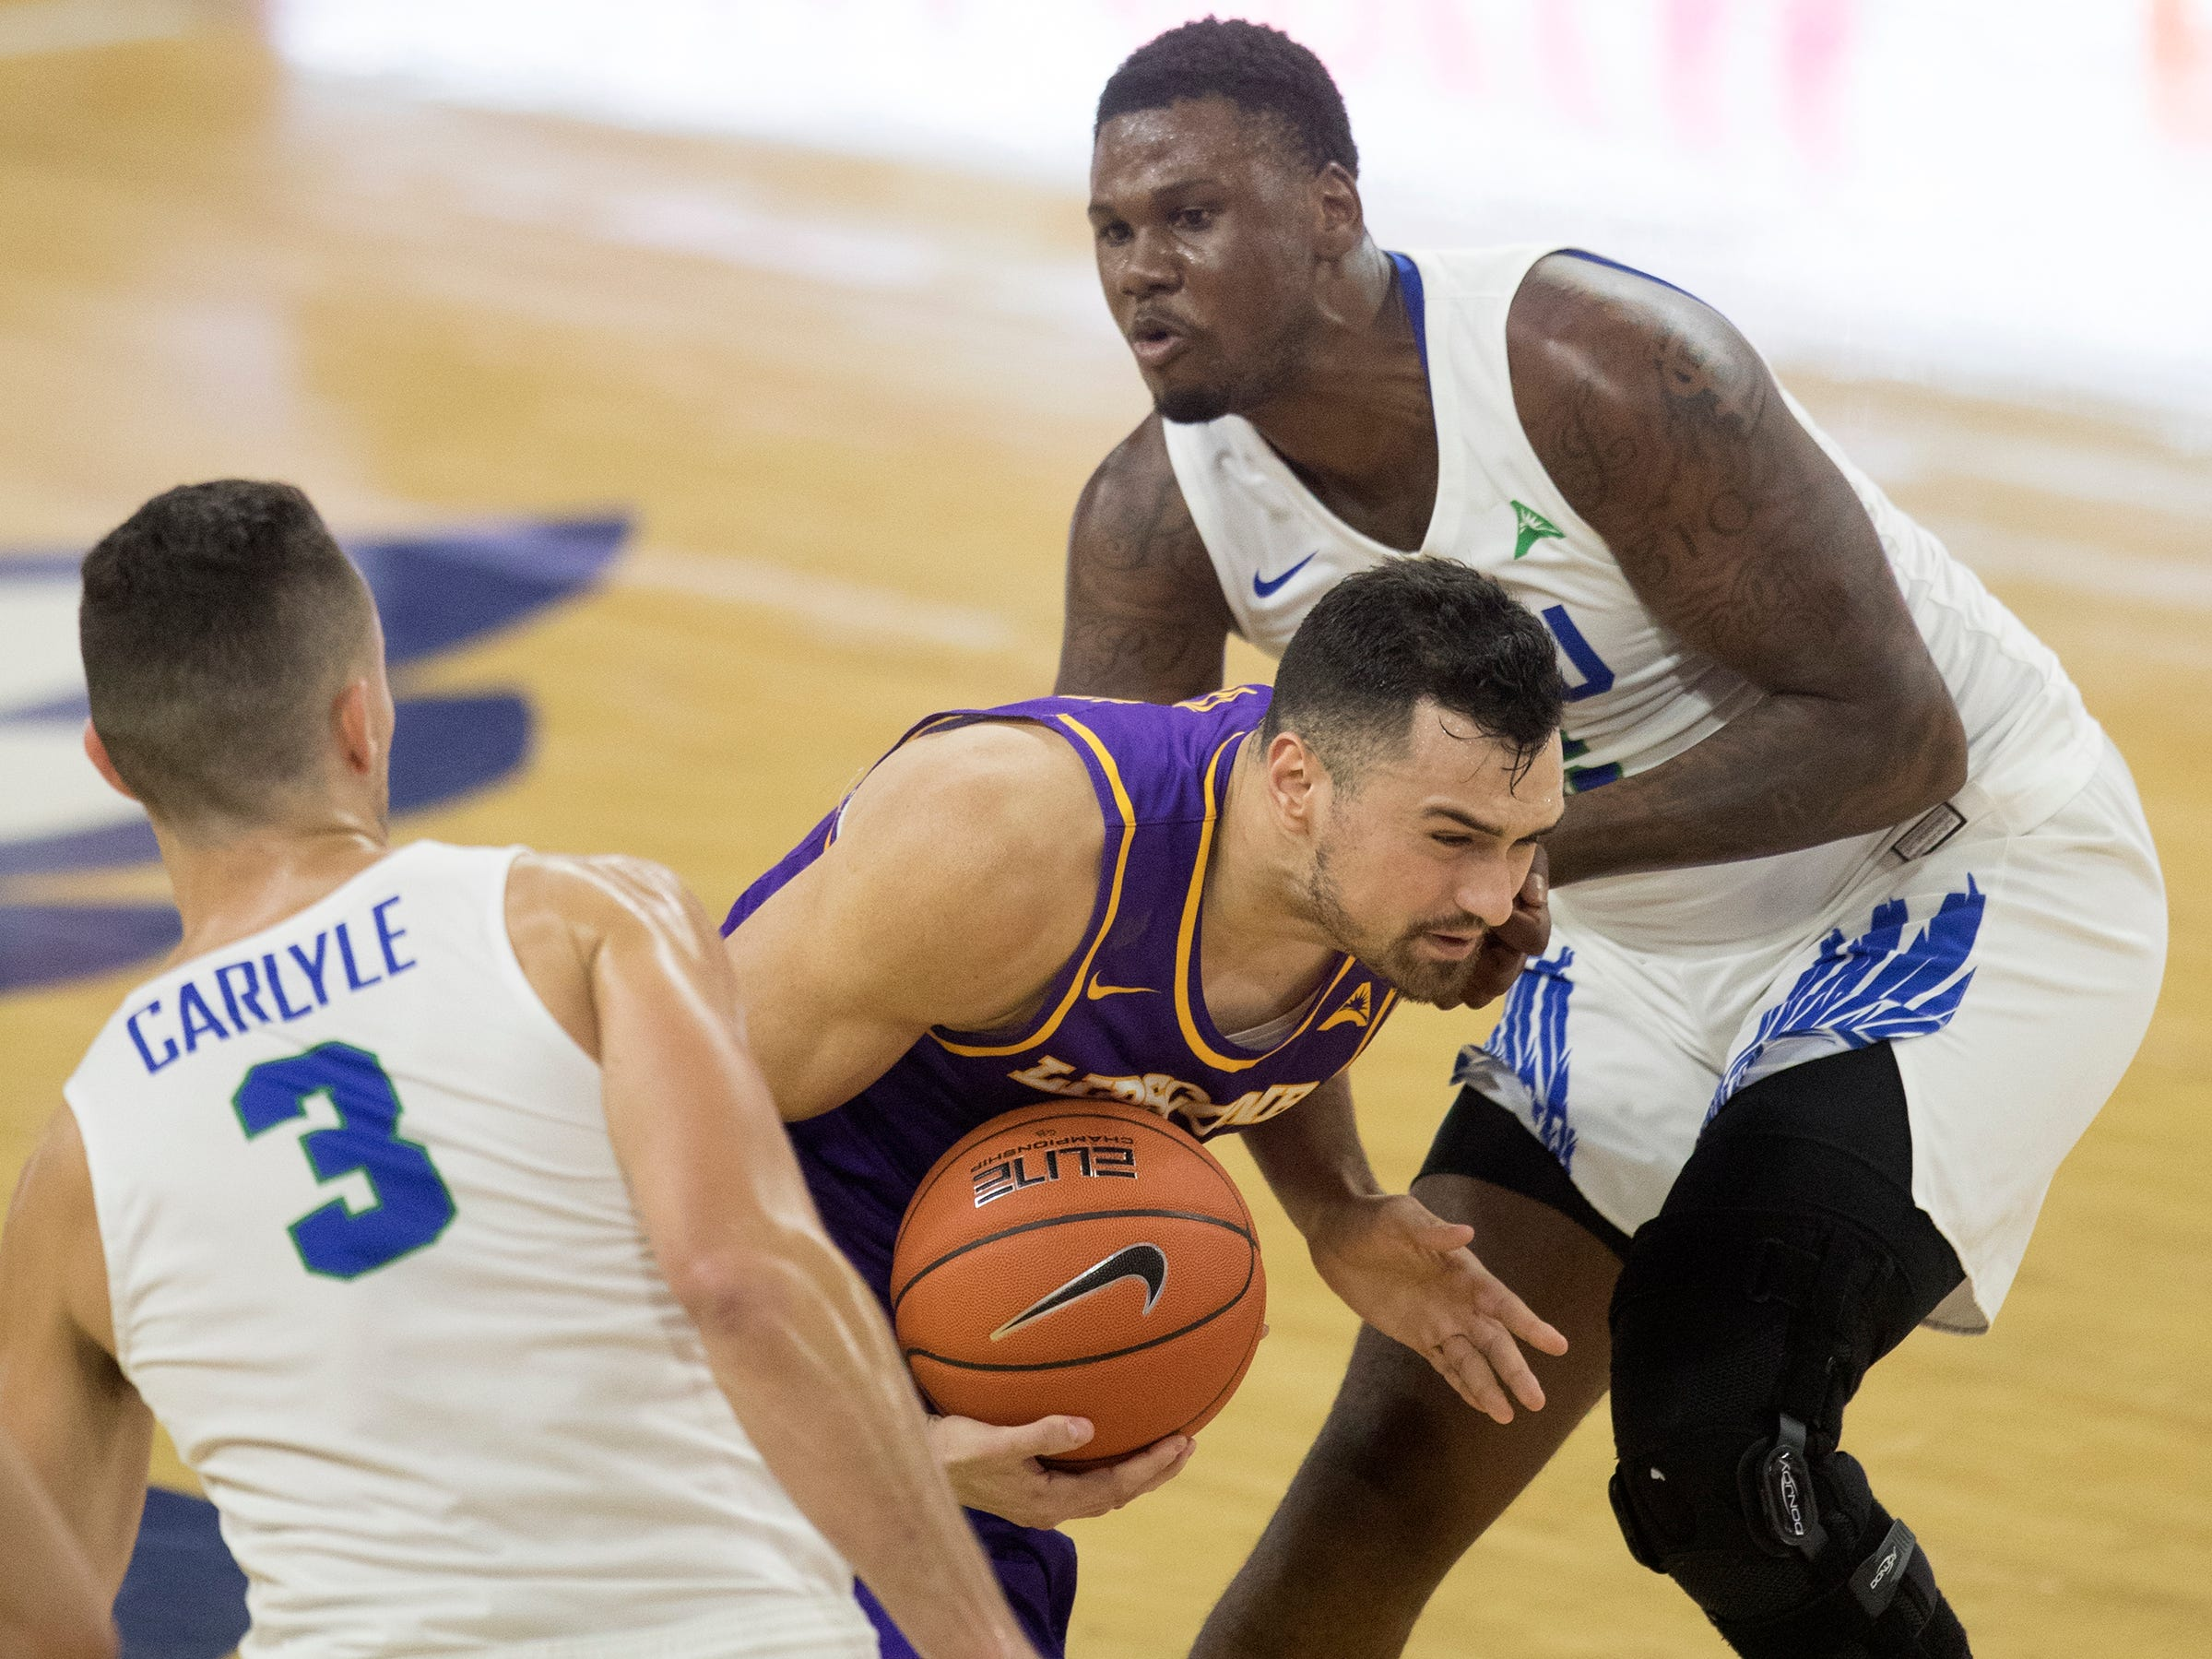 Lipscomb's Andrew Fleming, center, drives to the basket against FGCU on Wednesday at FGCU in Fort Myers. FGCU beat Lipscomb 67-61.